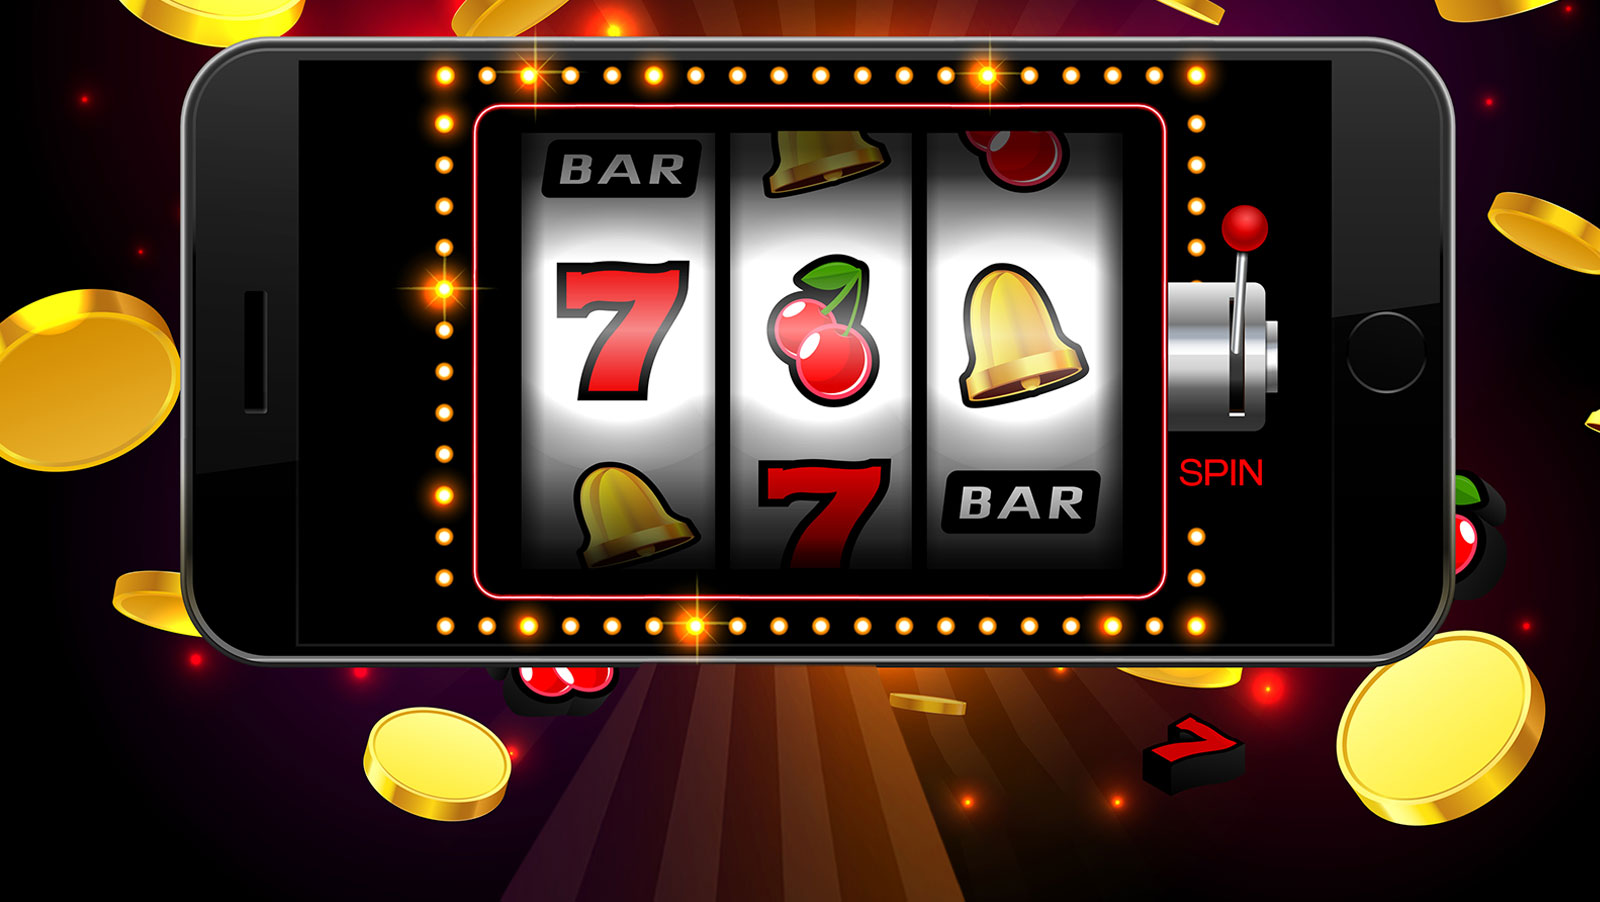 beckys-affiliated-how-fantasma-games-delivers-innovation-in-mobile-slot-offerings